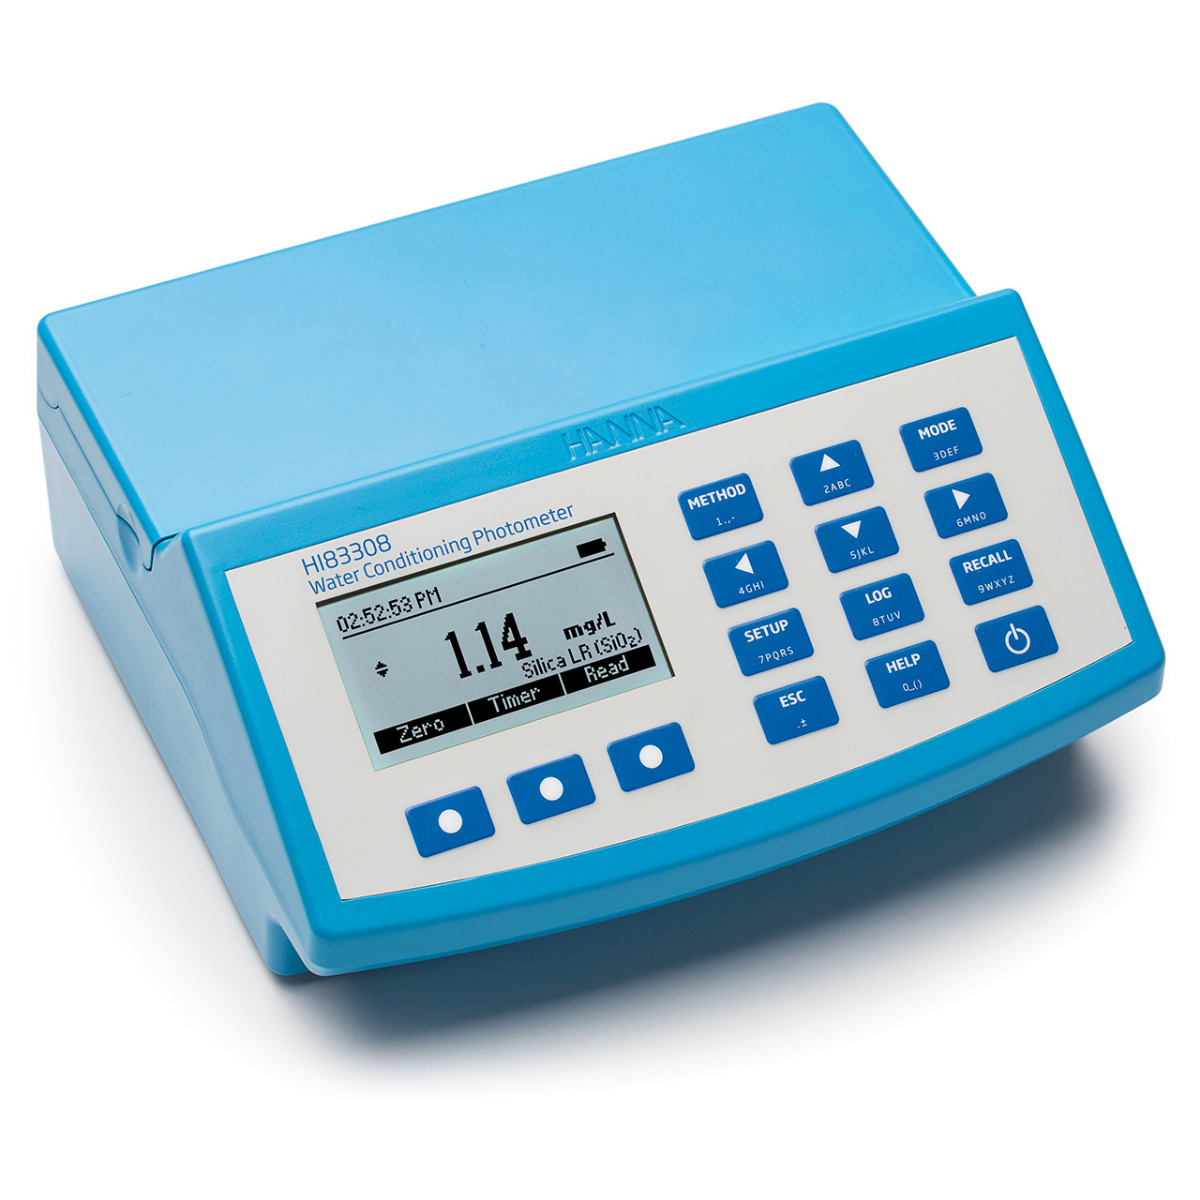 Water Conditioning Photometer - HI83308